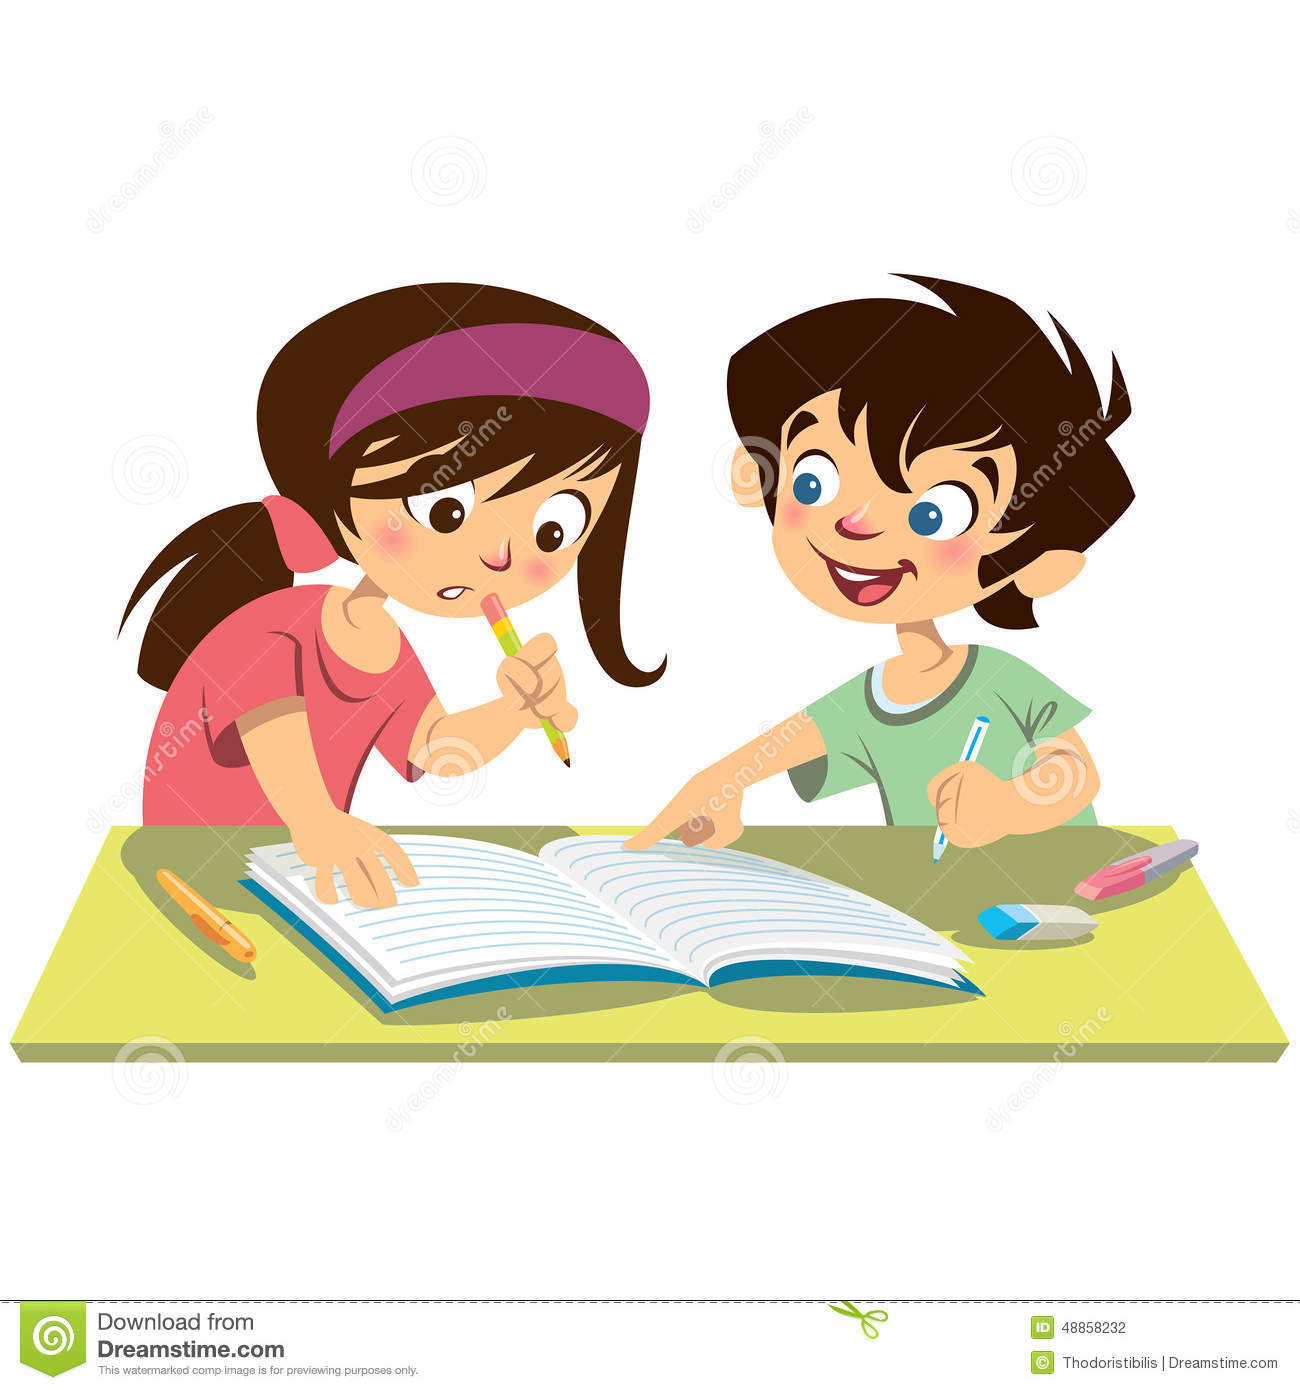 Essay should boys and girls study together